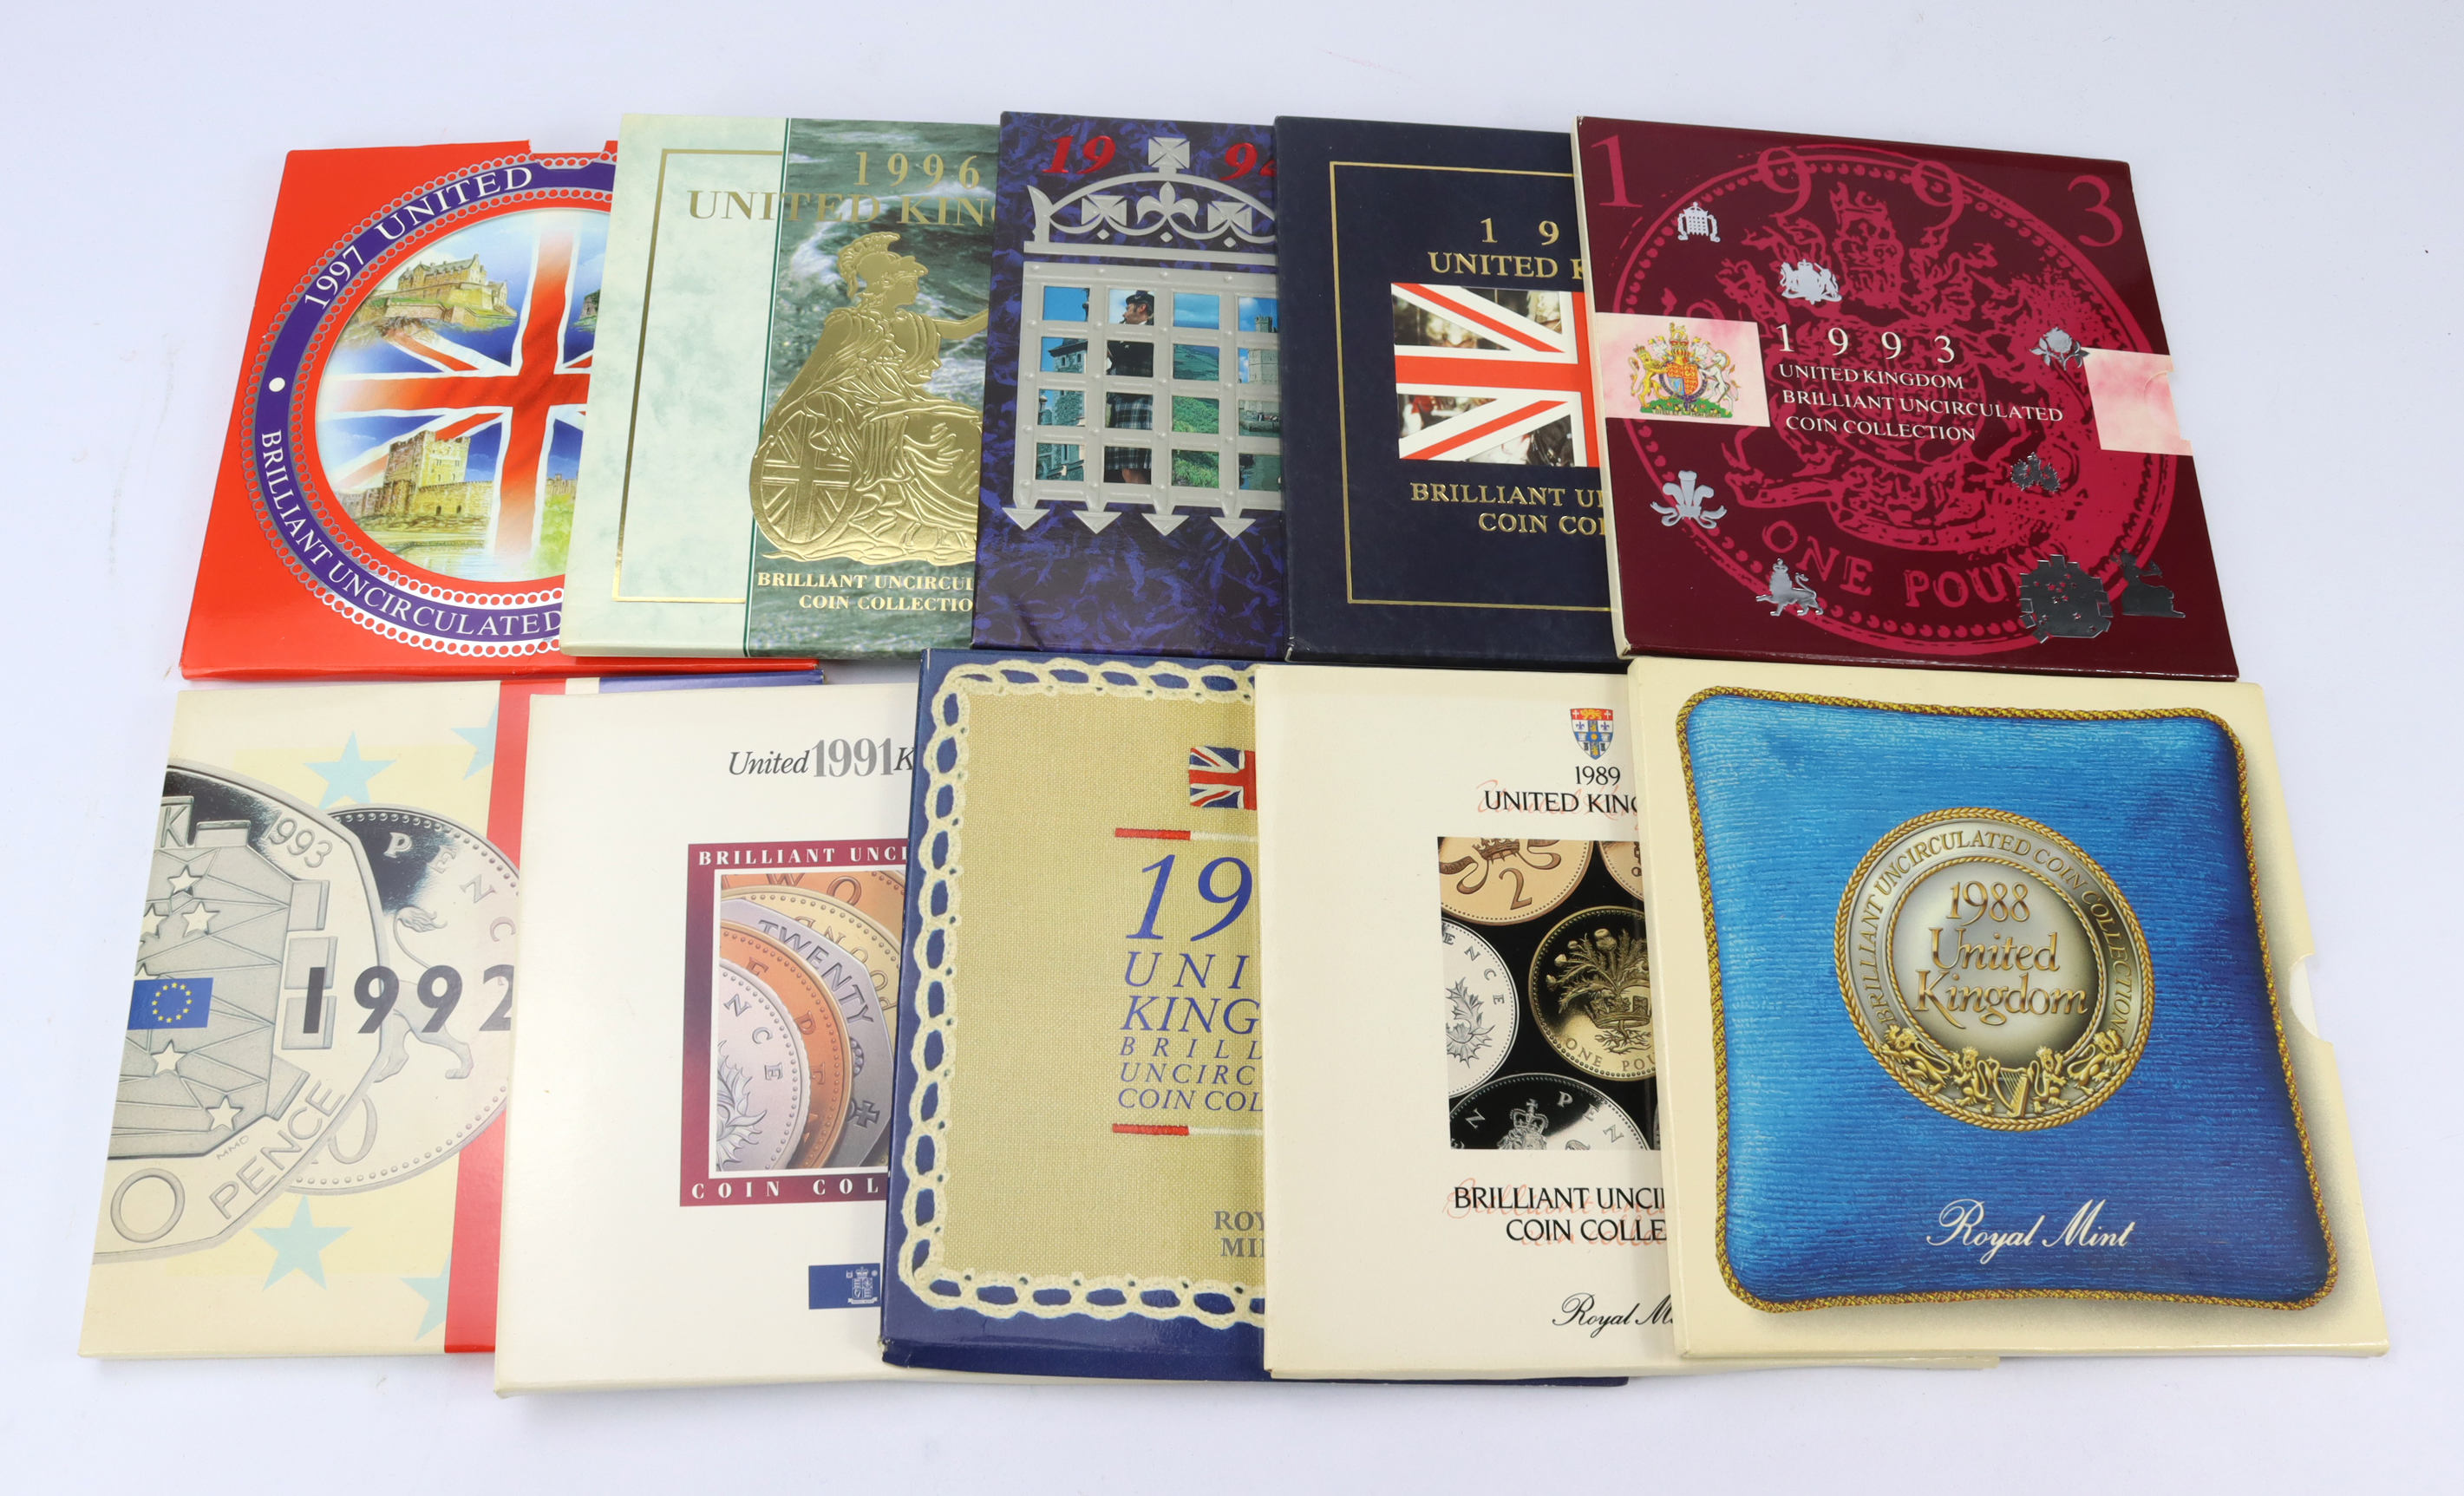 GB Mint sets (10) a date run from 1988 - 1997. All BU in the Royal mint packaging